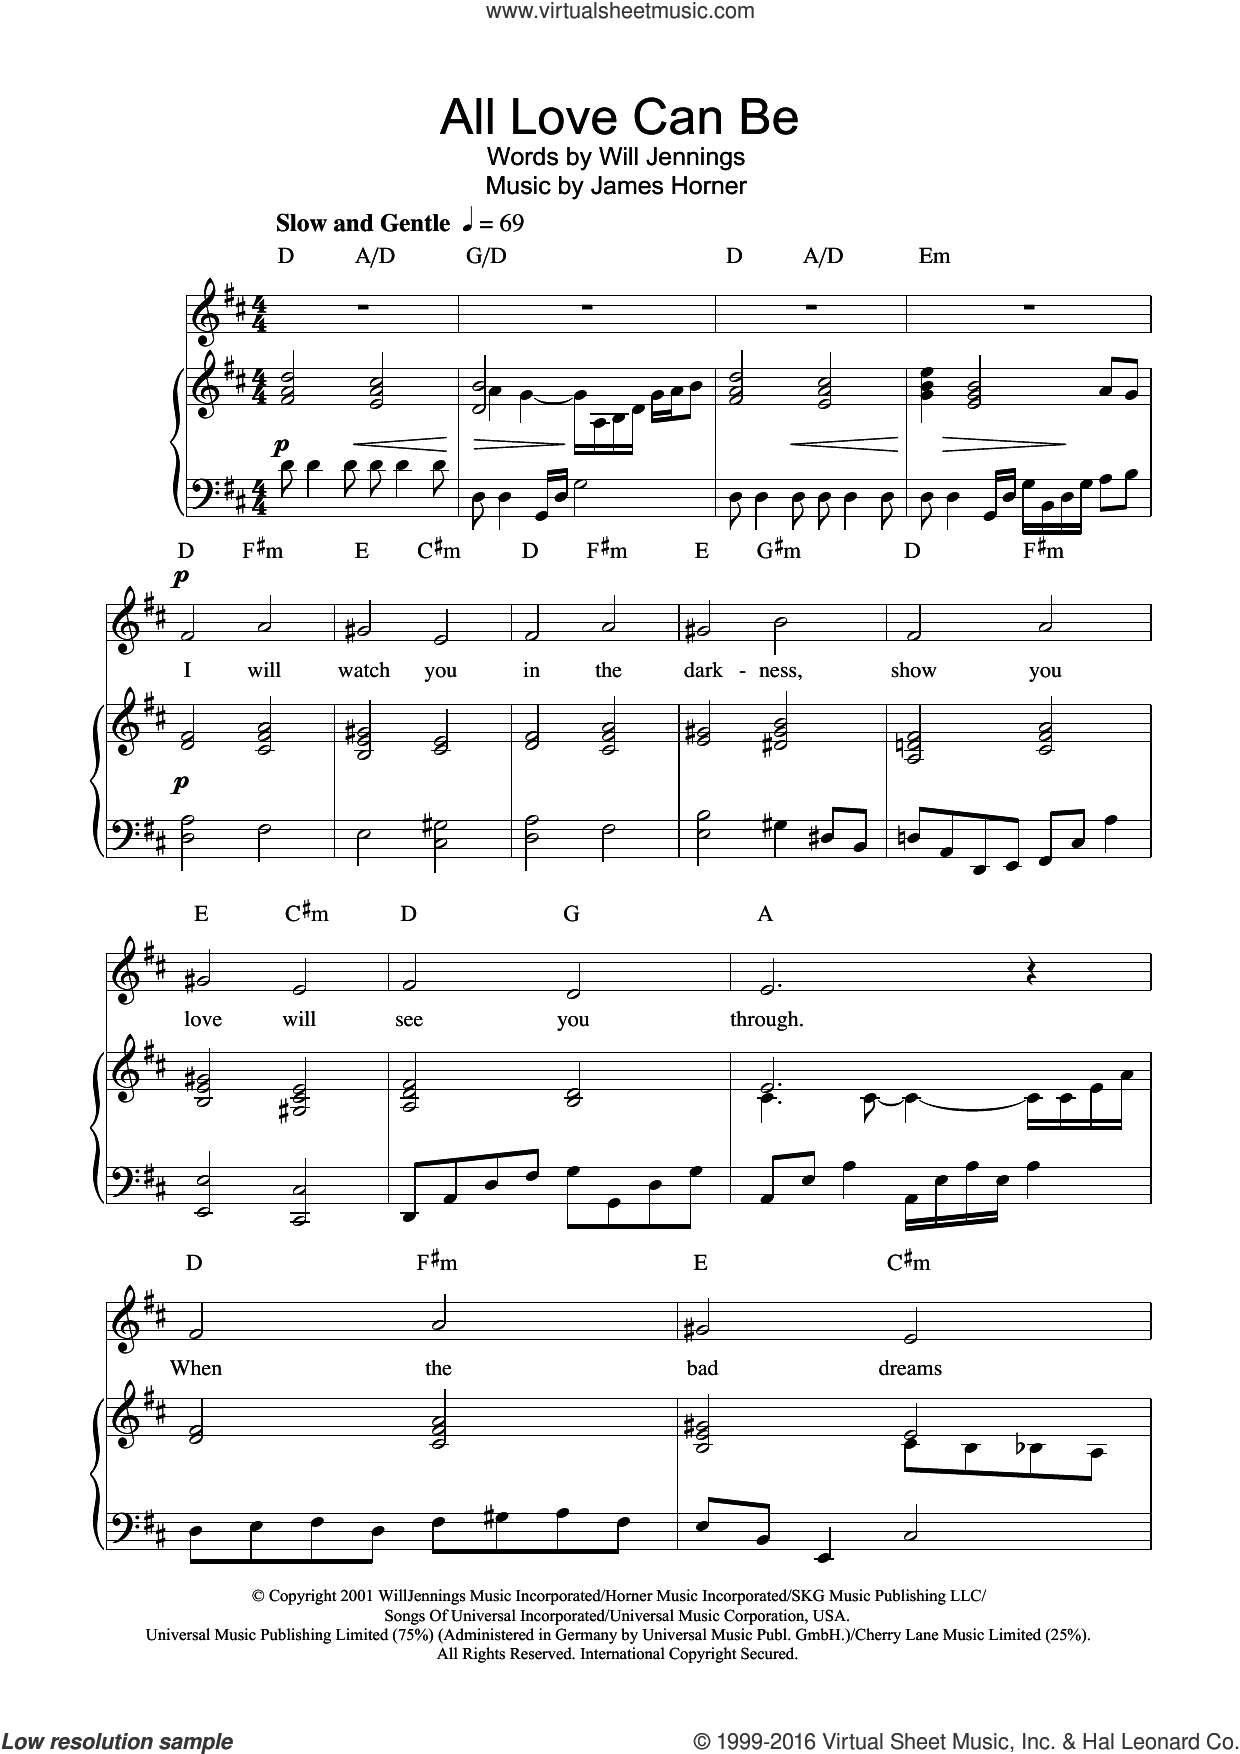 All Love Can Be (from A Beautiful Mind) sheet music for voice, piano or guitar by Charlotte Church, James Horner and Will Jennings, intermediate